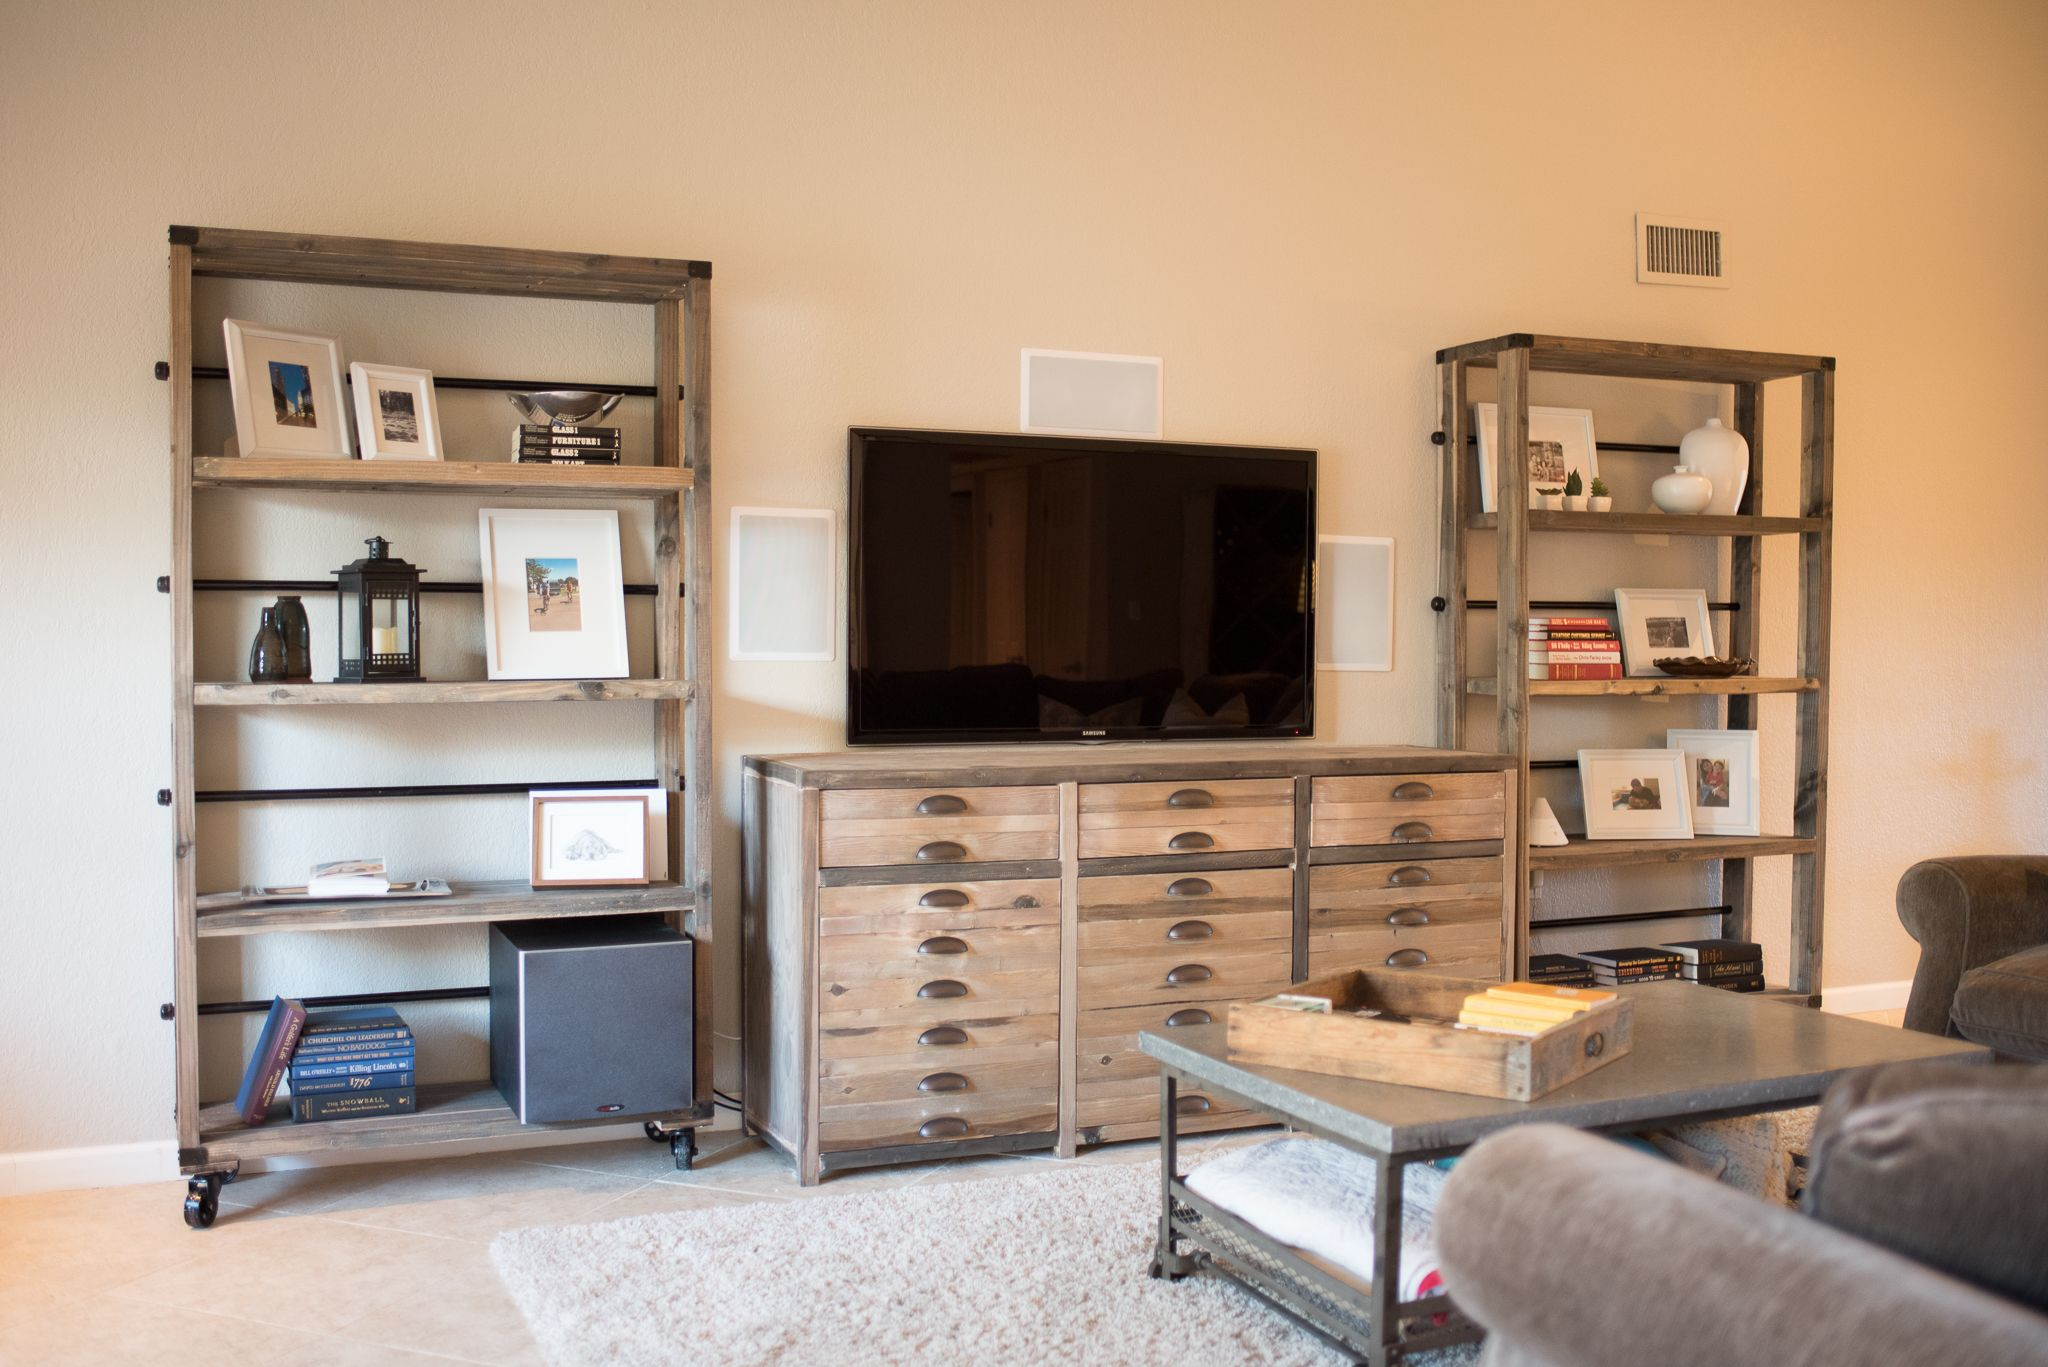 Entertainment center and bookshelves do it yourself home entertainment center and bookshelves do it yourself home projects from ana white solutioingenieria Image collections